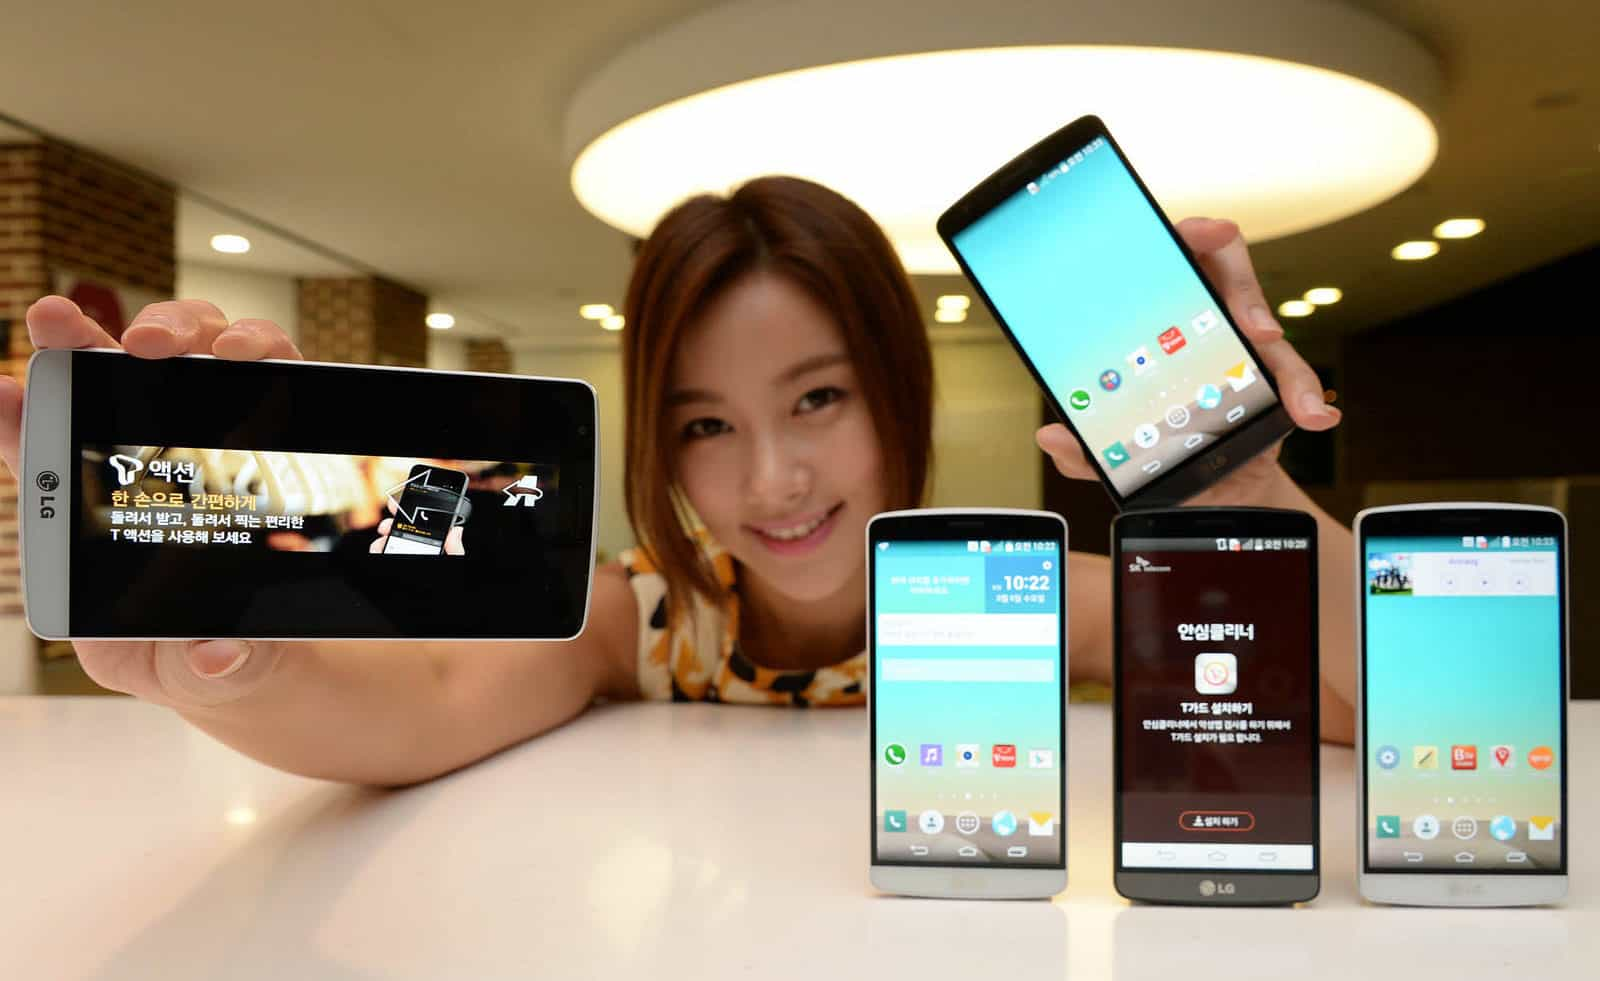 LG-G3-A-official-images1